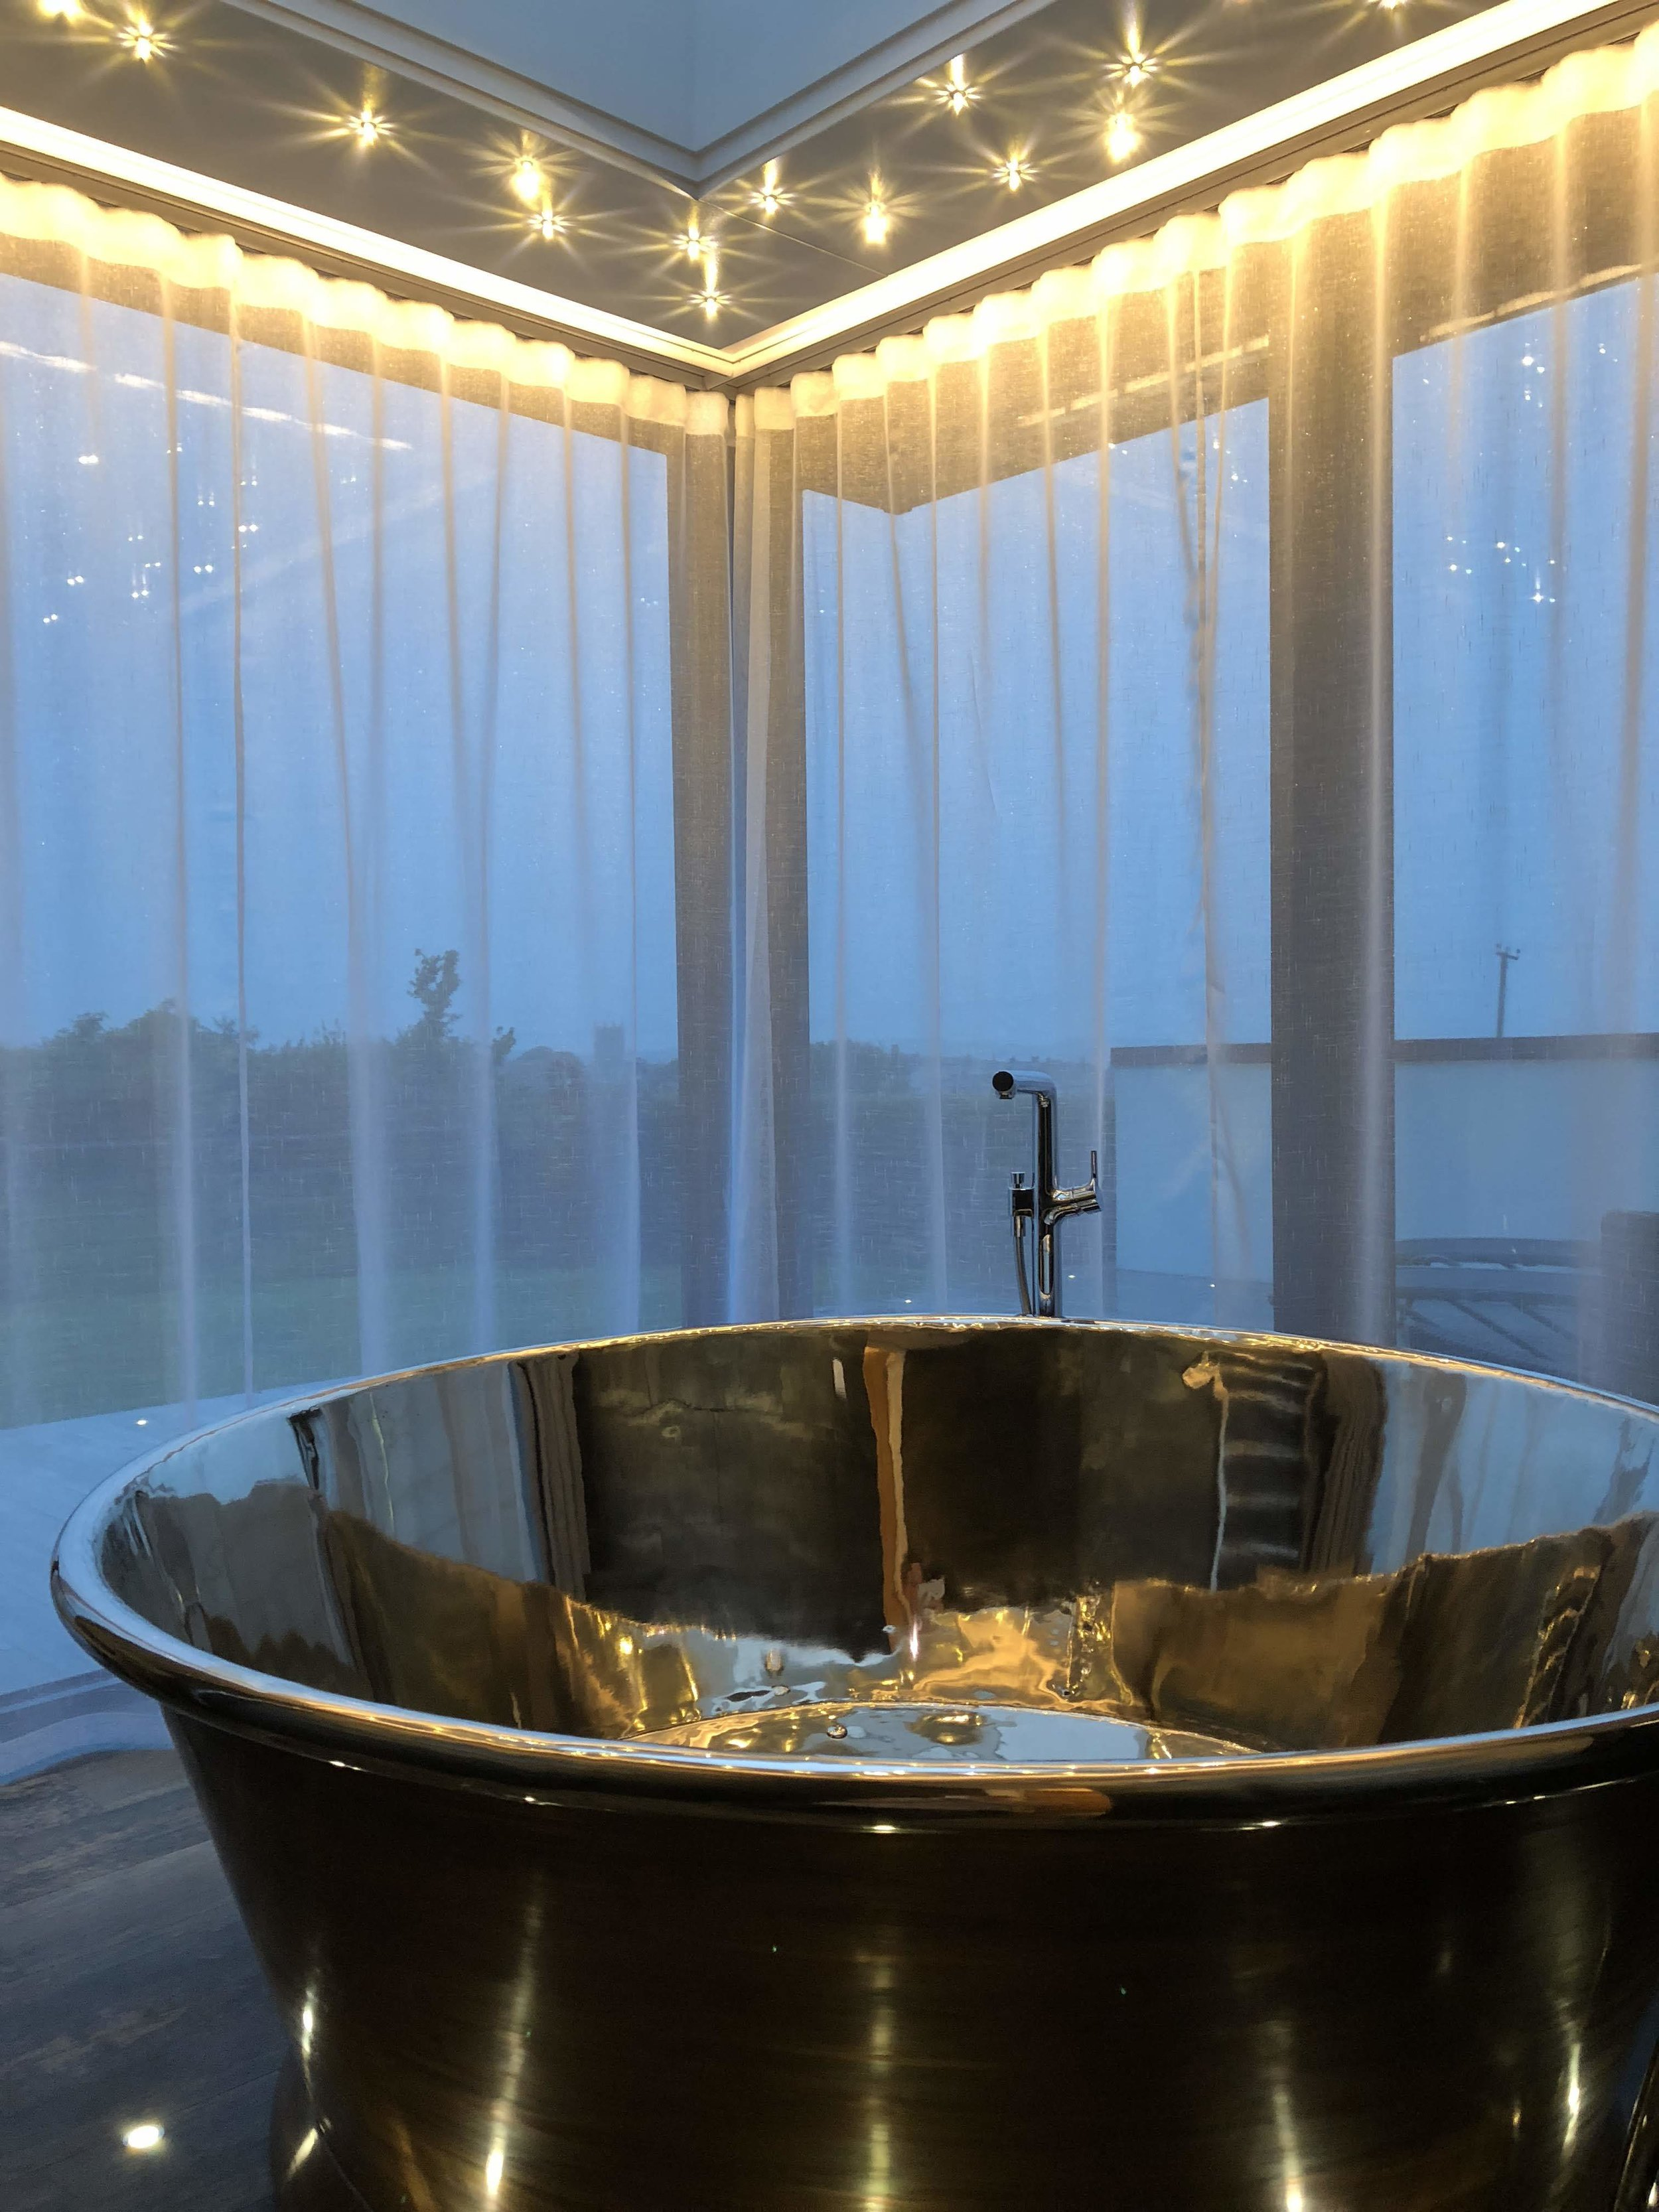 Why did we install Copper air-spa baths and not hot tubs? - There are some risks associated with hot tubs these are eliminated by installing baths that require fresh water for each use.Our air-spa baths give a similar feel to a hot tub and they do not require the use of chemicals.The biggest bath (and we'd say most similar to a hot tub) is the one in Sun Seeker.The round bath shown in the image is in Sundancer, the same size bath is also in Skyfall and Stargazey.Bijou, Silver Sea and Moonraker have bateau air-spa baths.